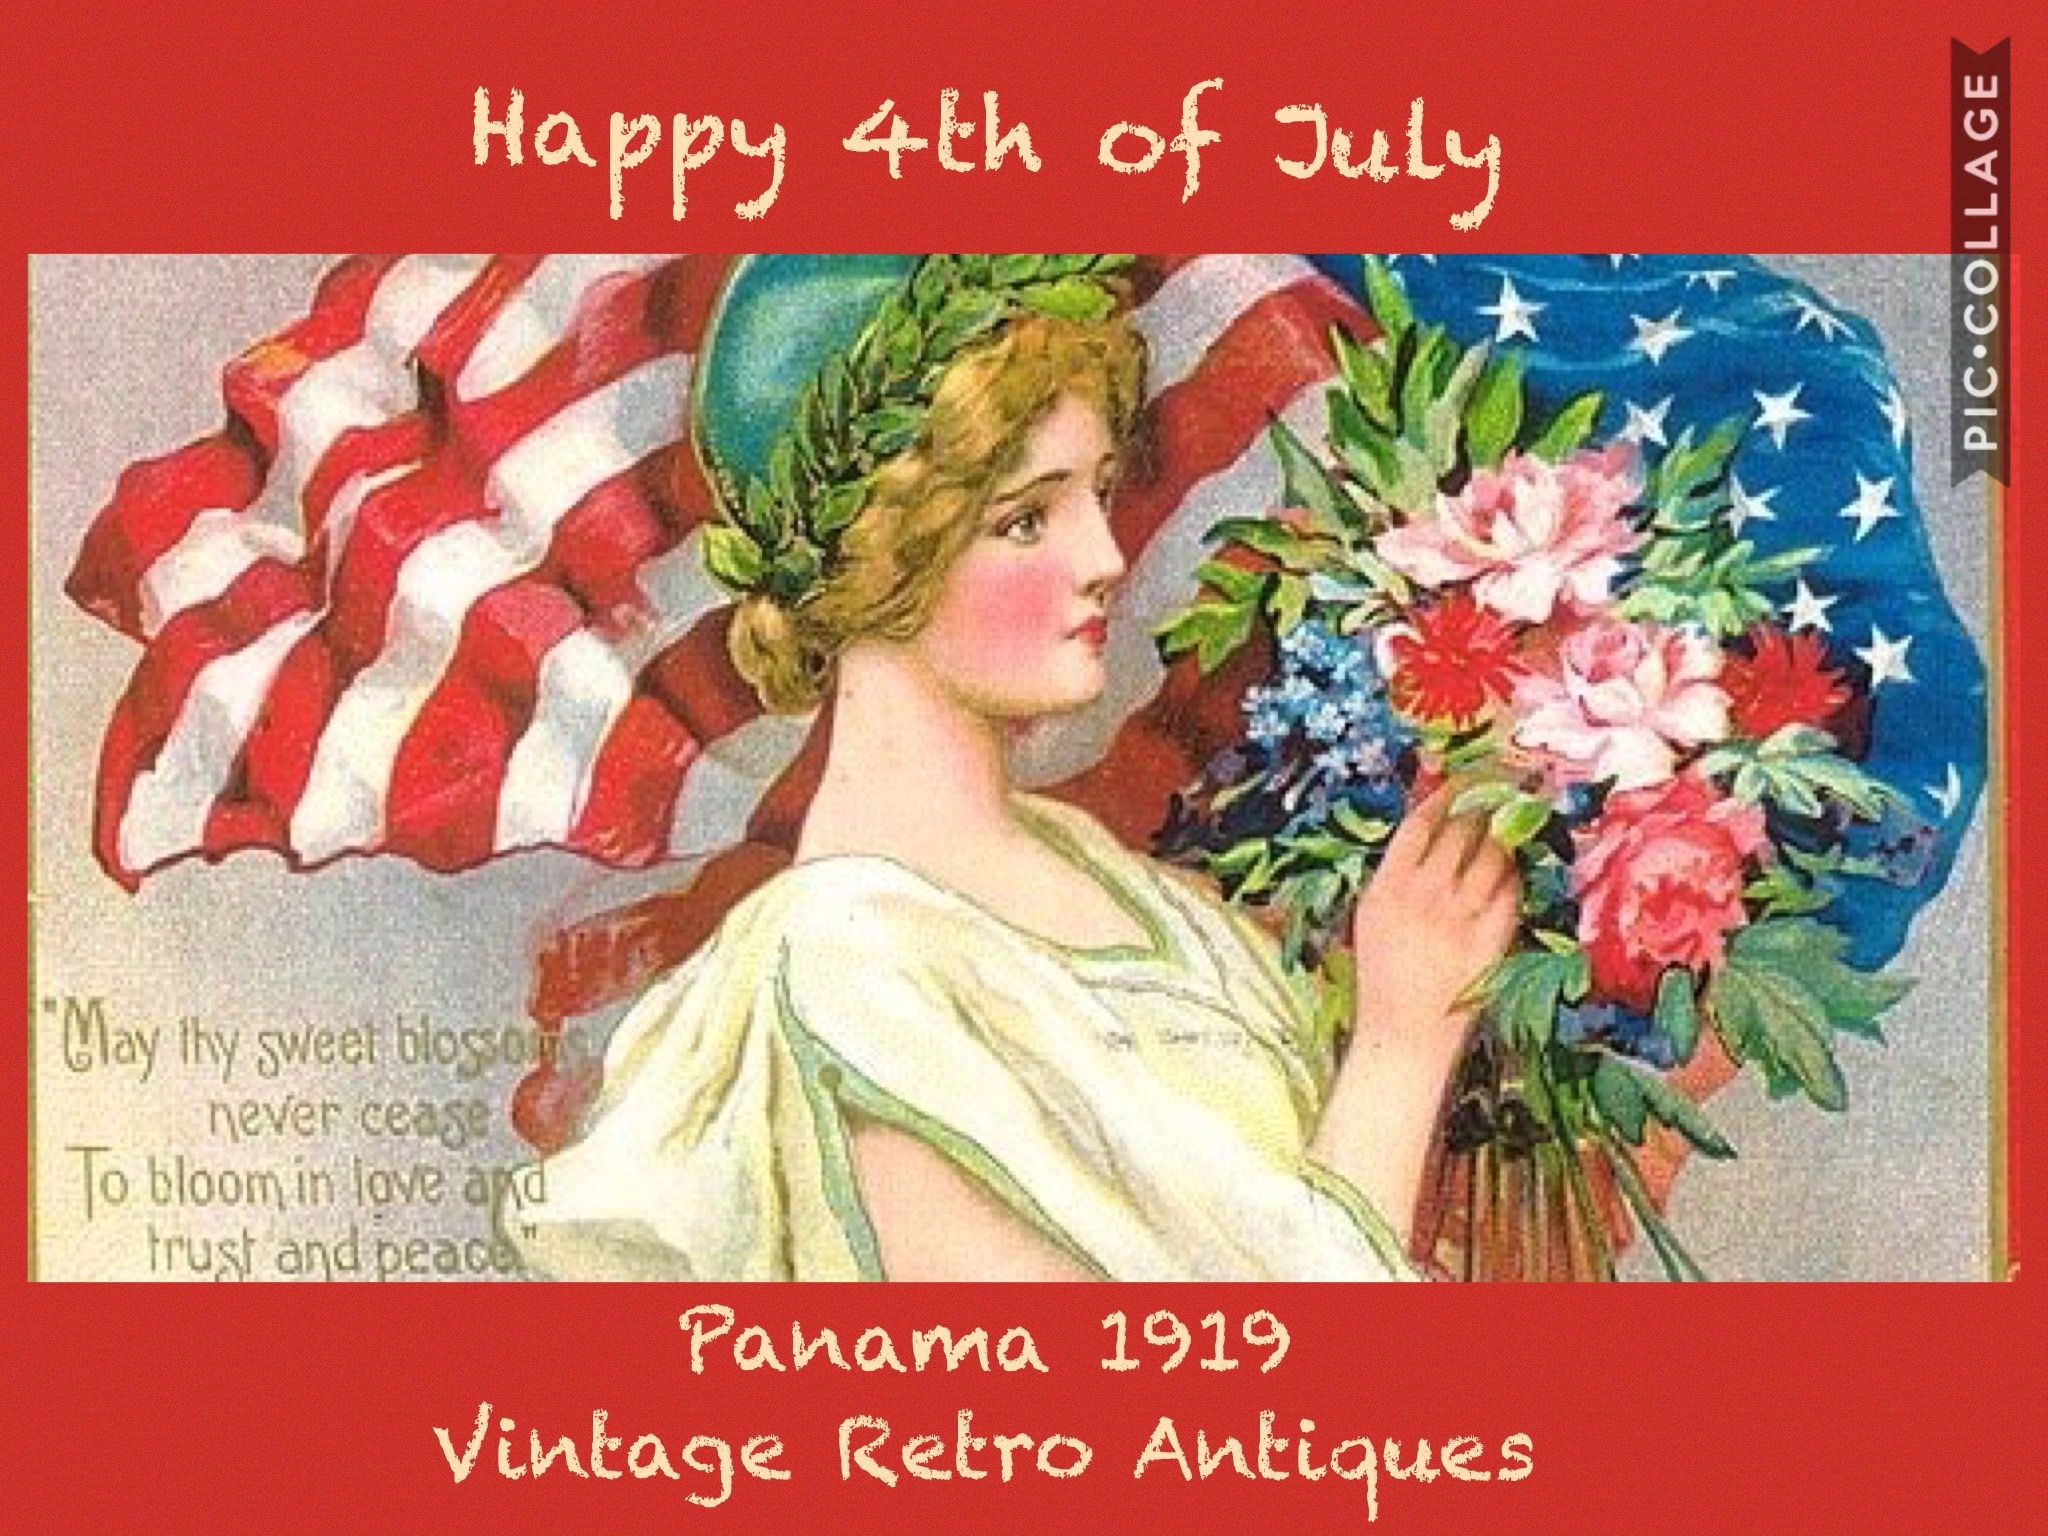 Fourth of july greetings from our house to yours 4thofjuly fourth of july greetings from our house to yours 4thofjuly kristyandbryce Images